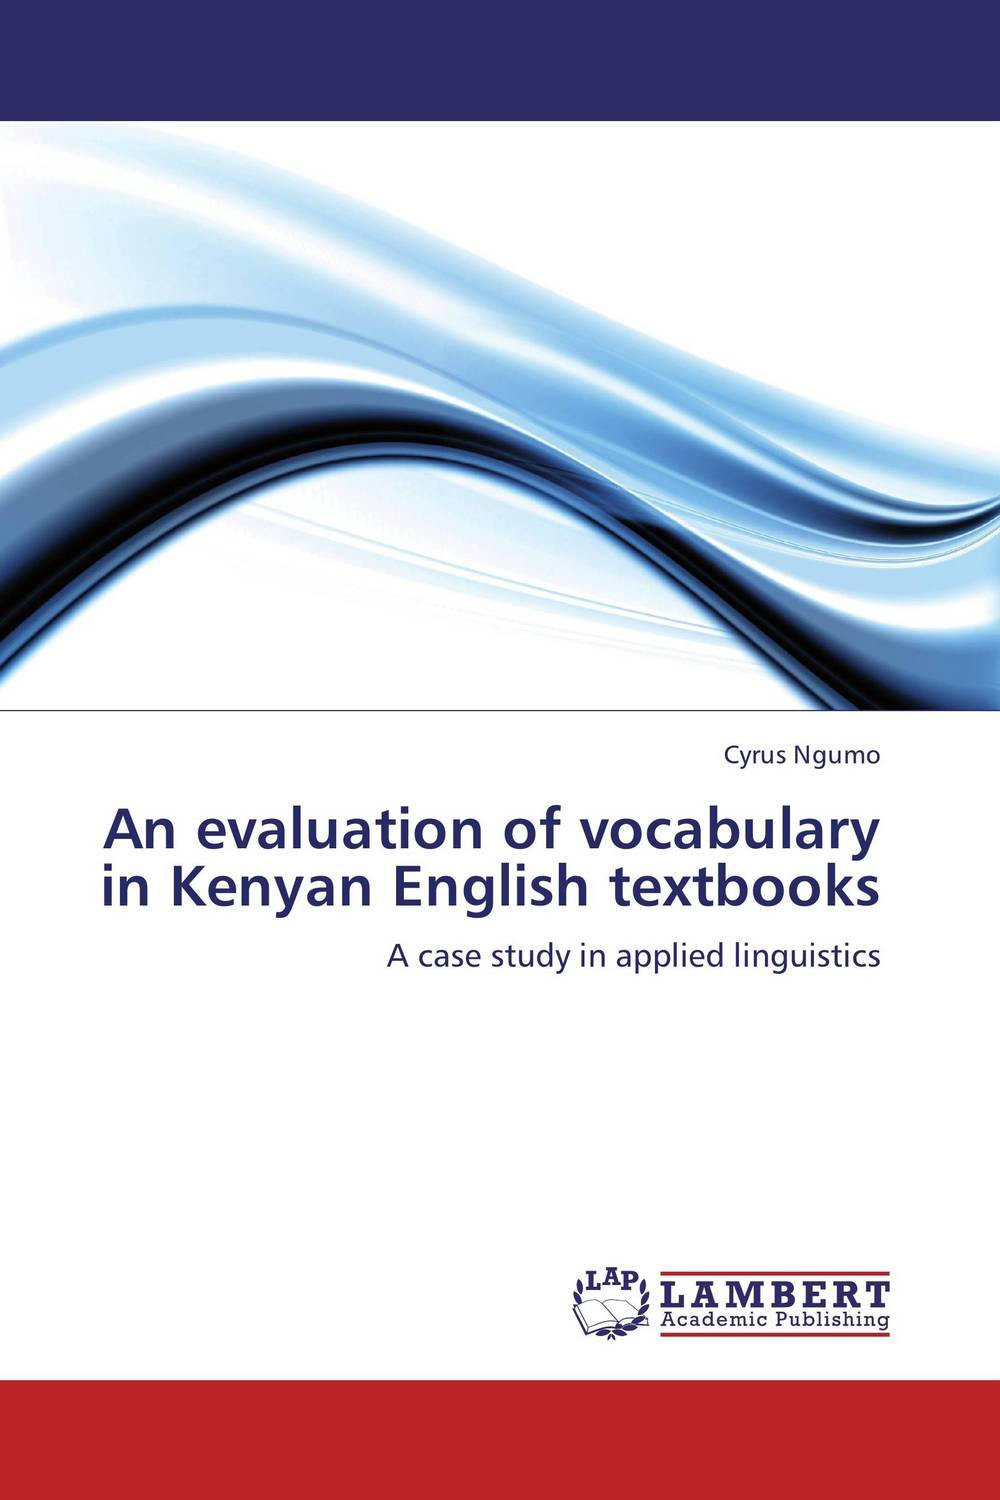 An evaluation of vocabulary in Kenyan English textbooks an evaluation of vocabulary in kenyan english textbooks